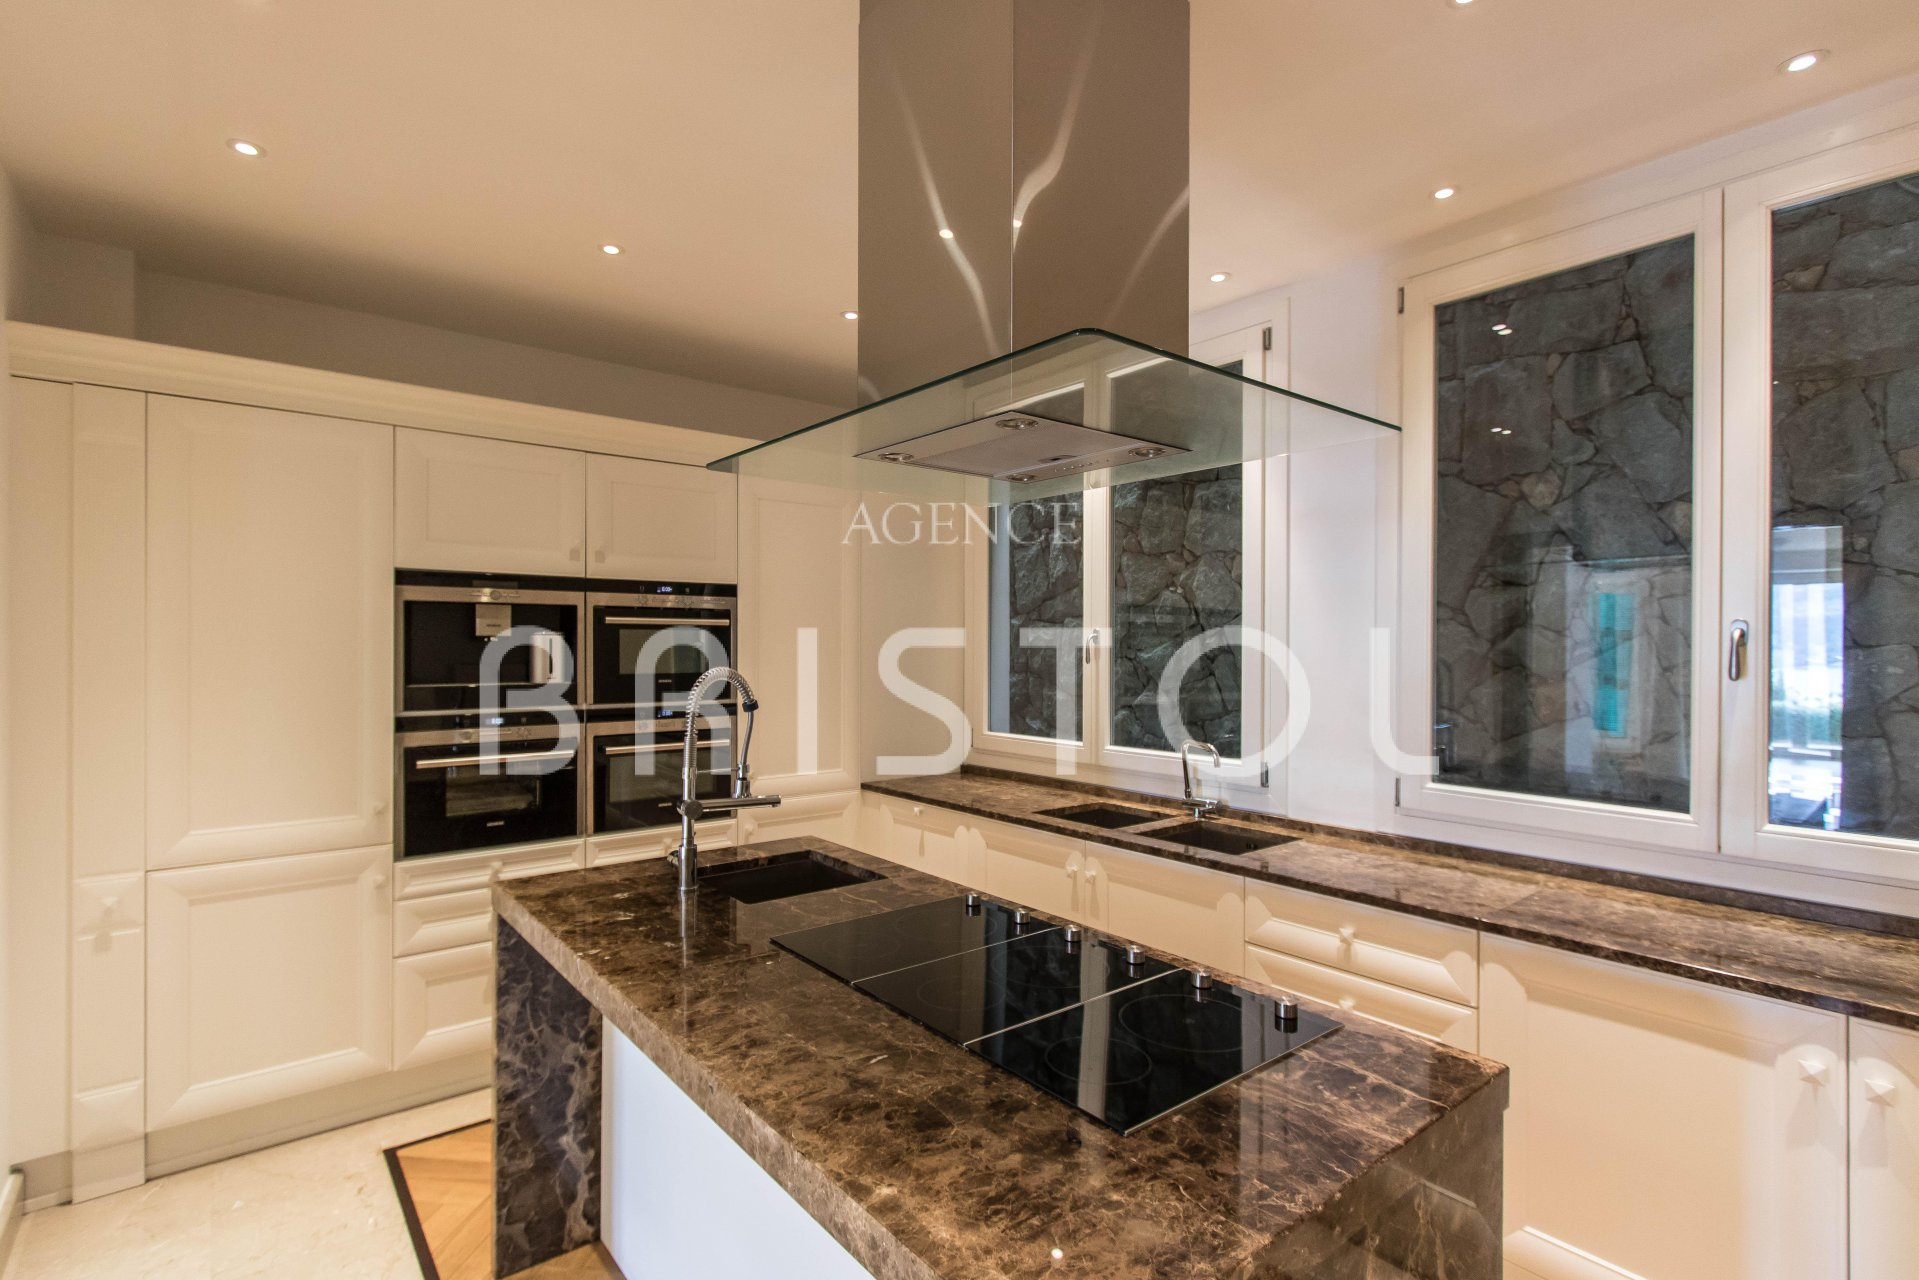 Kitchen island, stainless steel